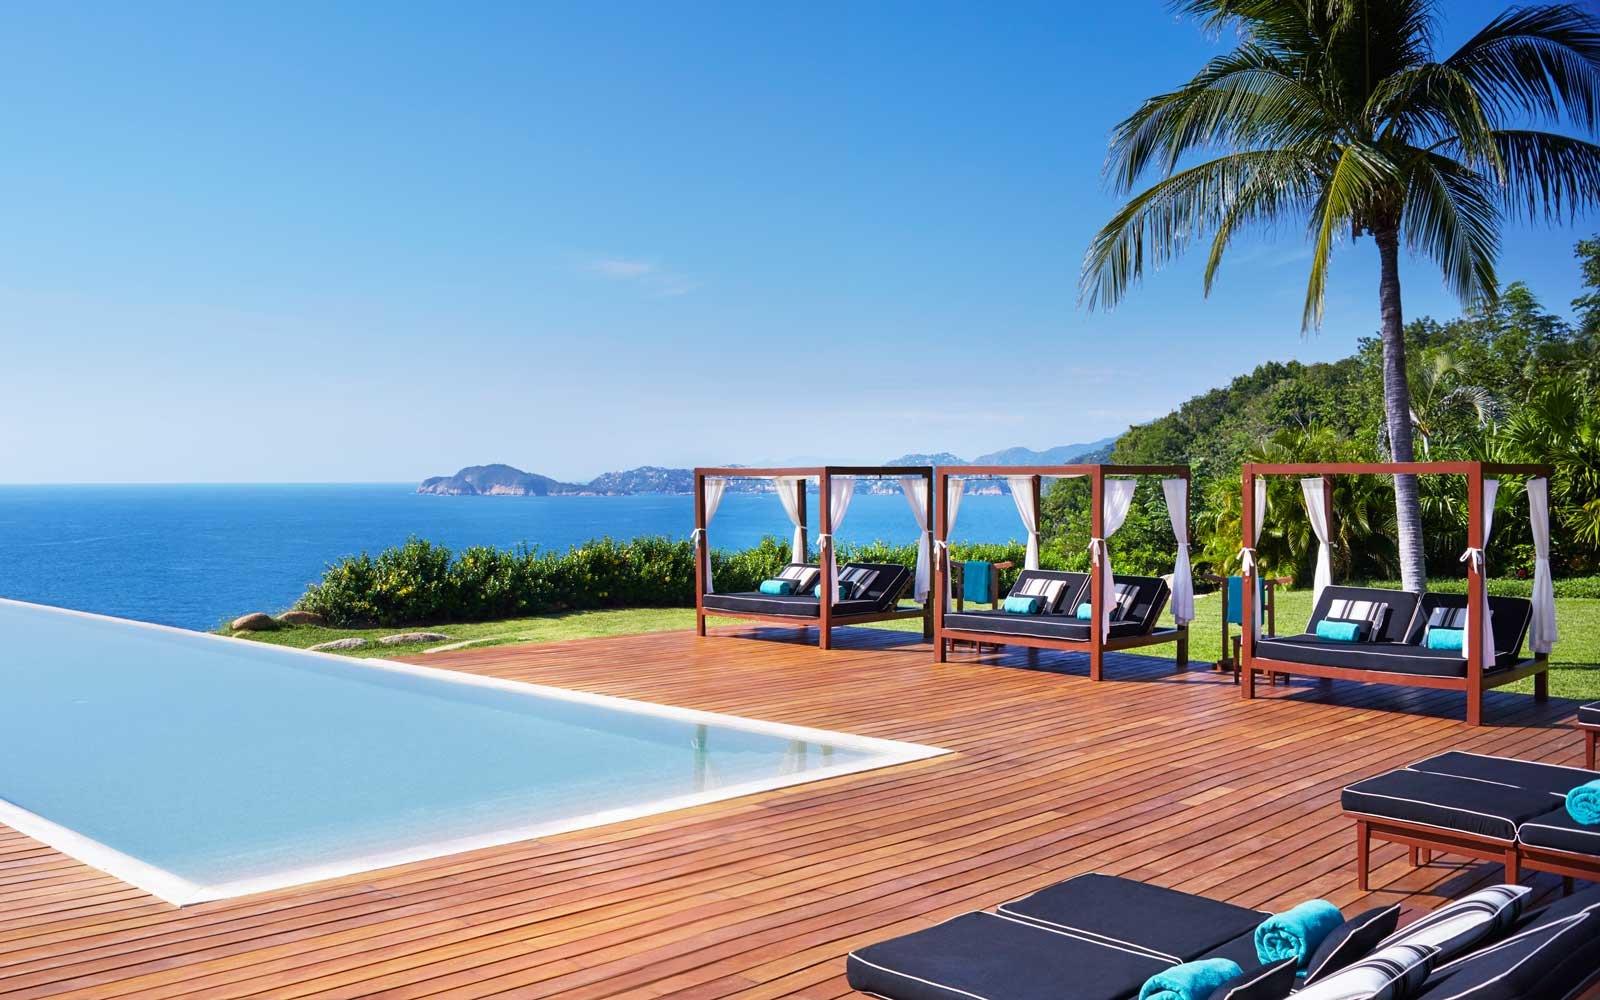 Infinity pool at the Banyan Tree Cabo Marques